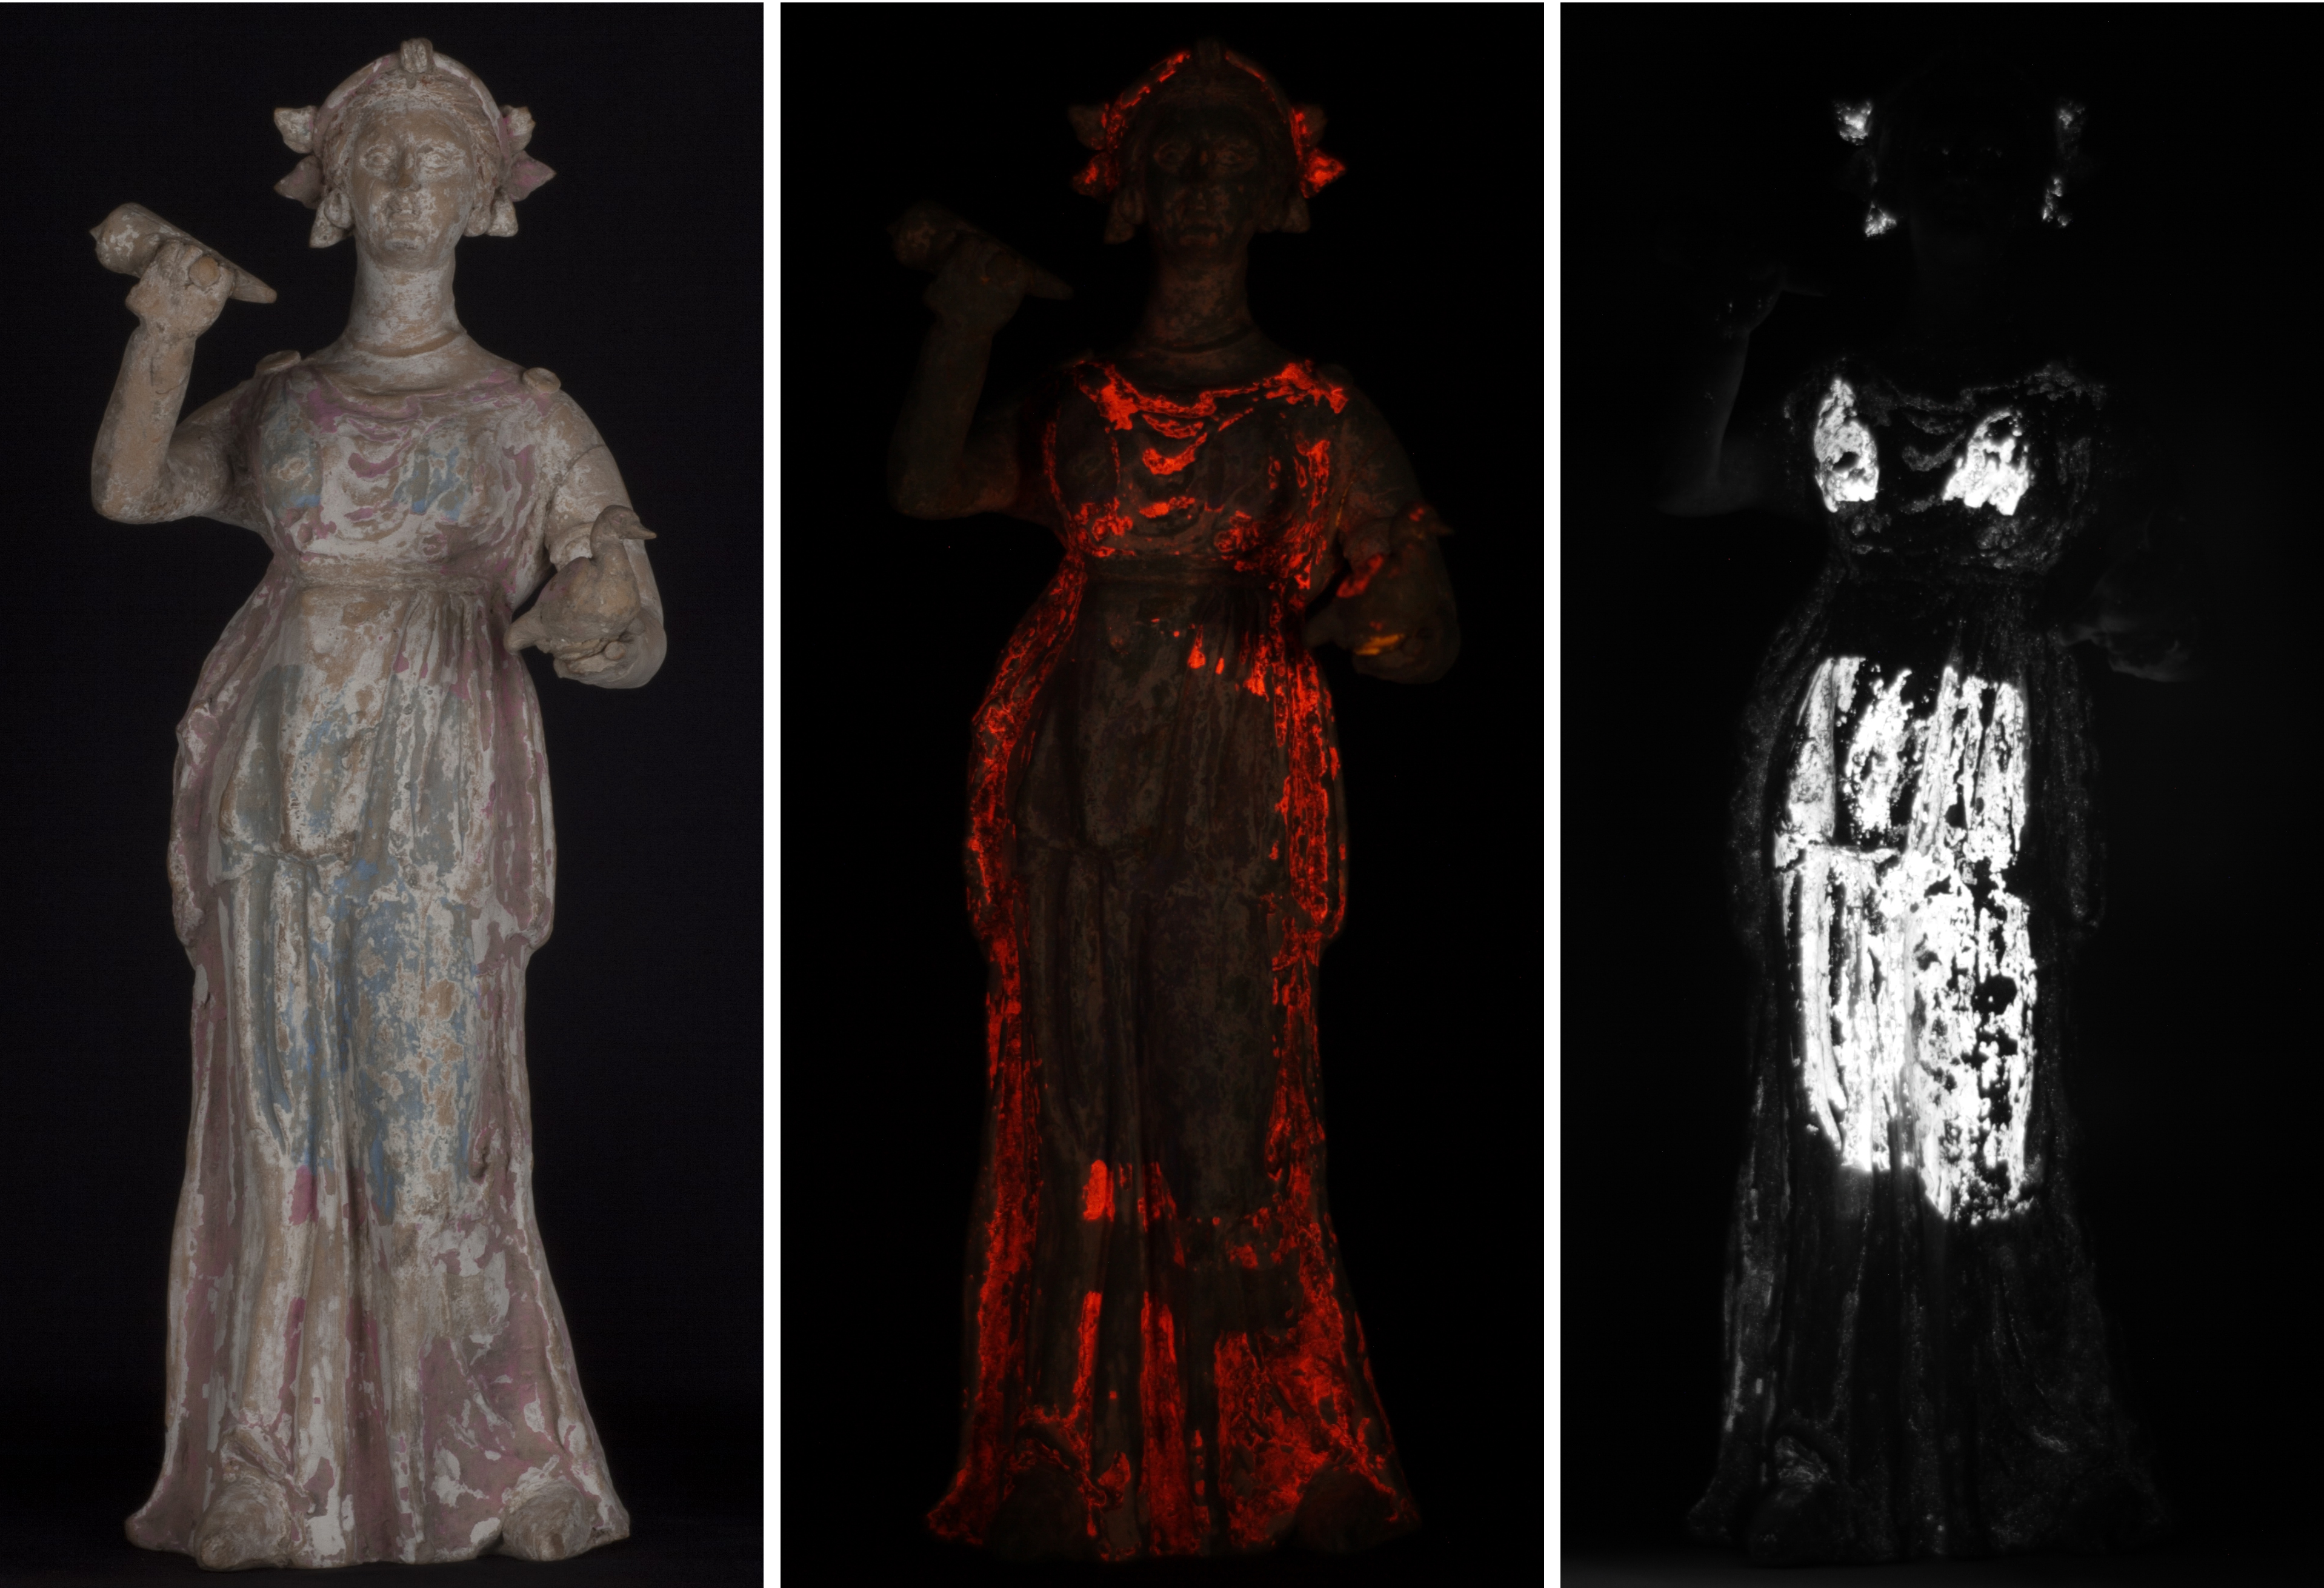 Ladies 'a-glow' – finding the colour in 2,000 year old figurines